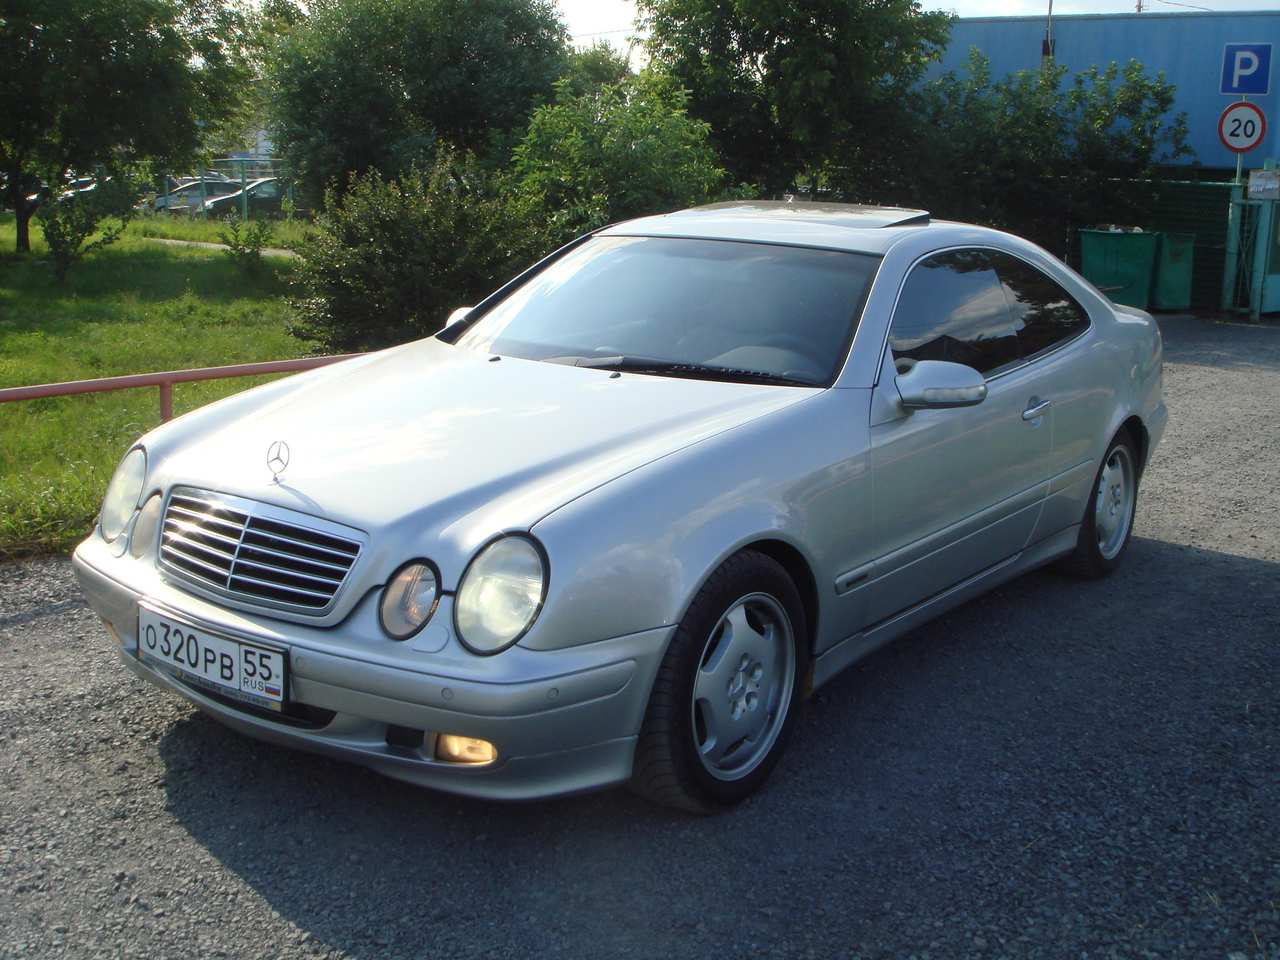 Used 2000 mercedes benz clk class photos 3200cc for Mercedes benz clk500 for sale